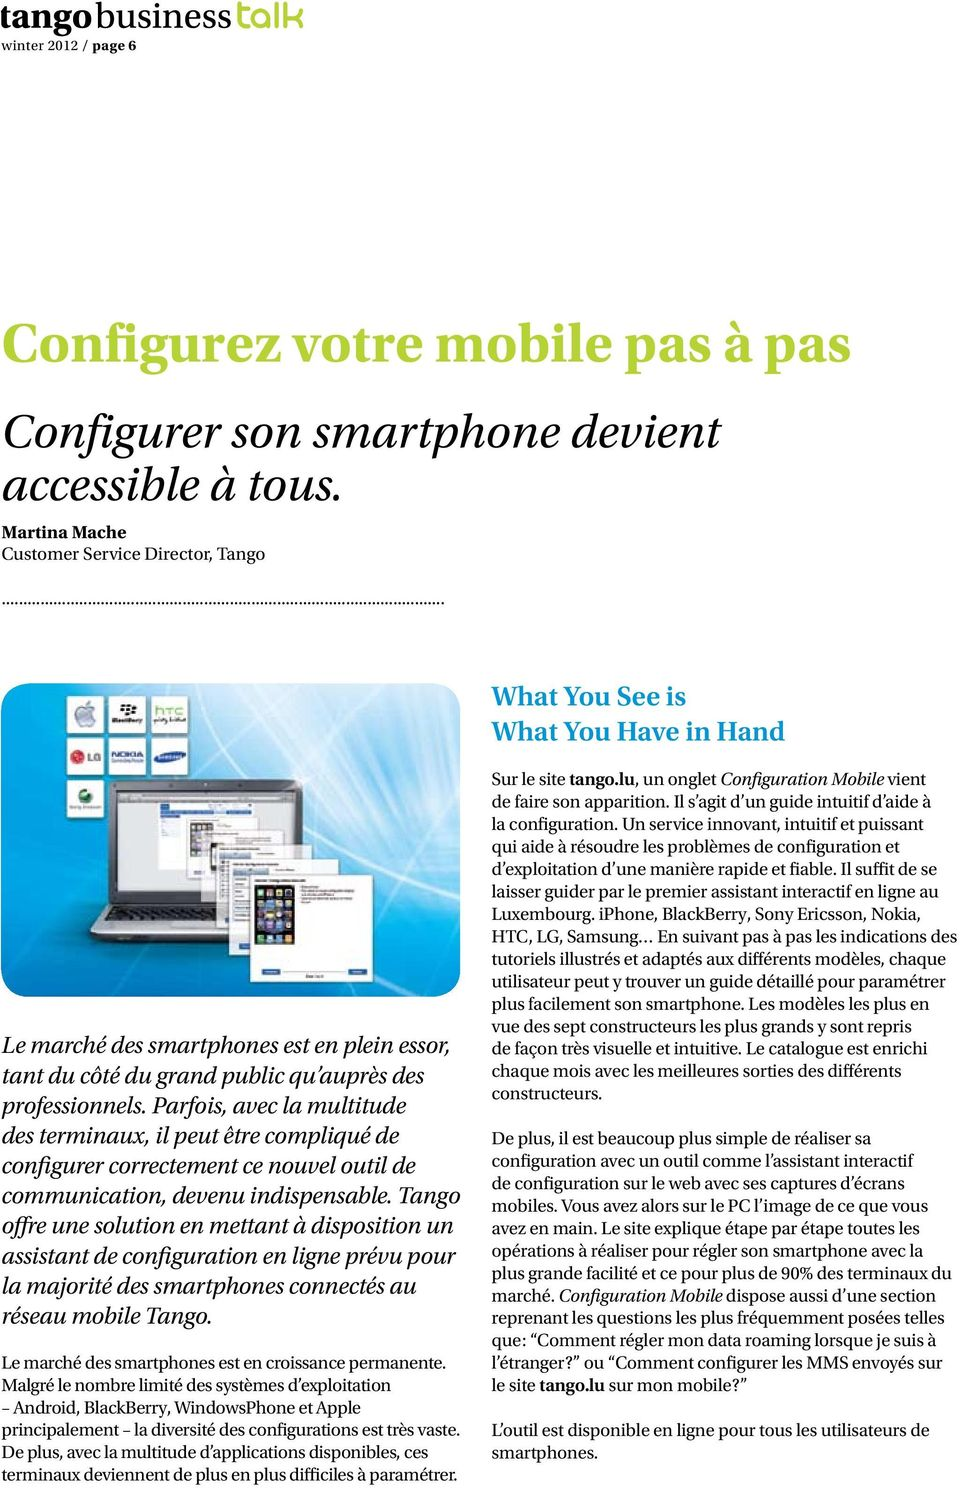 ... What You See is What You Have in Hand Désormais, laissez-vous guider Le marché des smartphones est en plein essor, par l assistant interactif Tango pour configurer votre mobile tant Assistance du